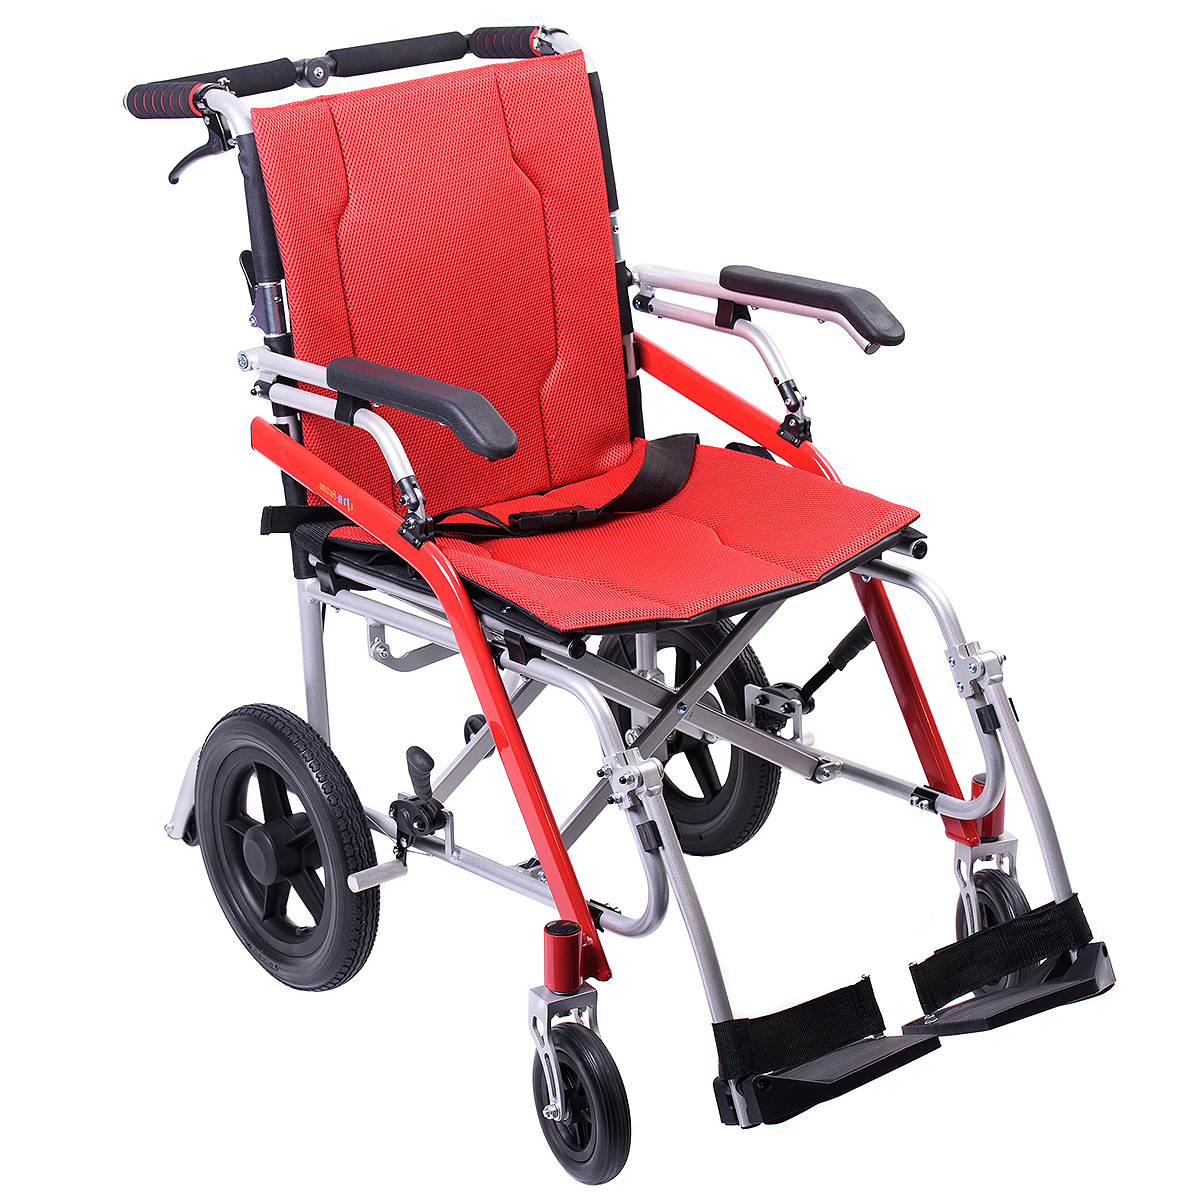 Hi-Fortune Lightweight Transport Medical Wheelchair with Adjustable Armrests and Hand Brakes, Portable and Folding with Magnesium Alloy, 18? Seat, Red, 21lbs